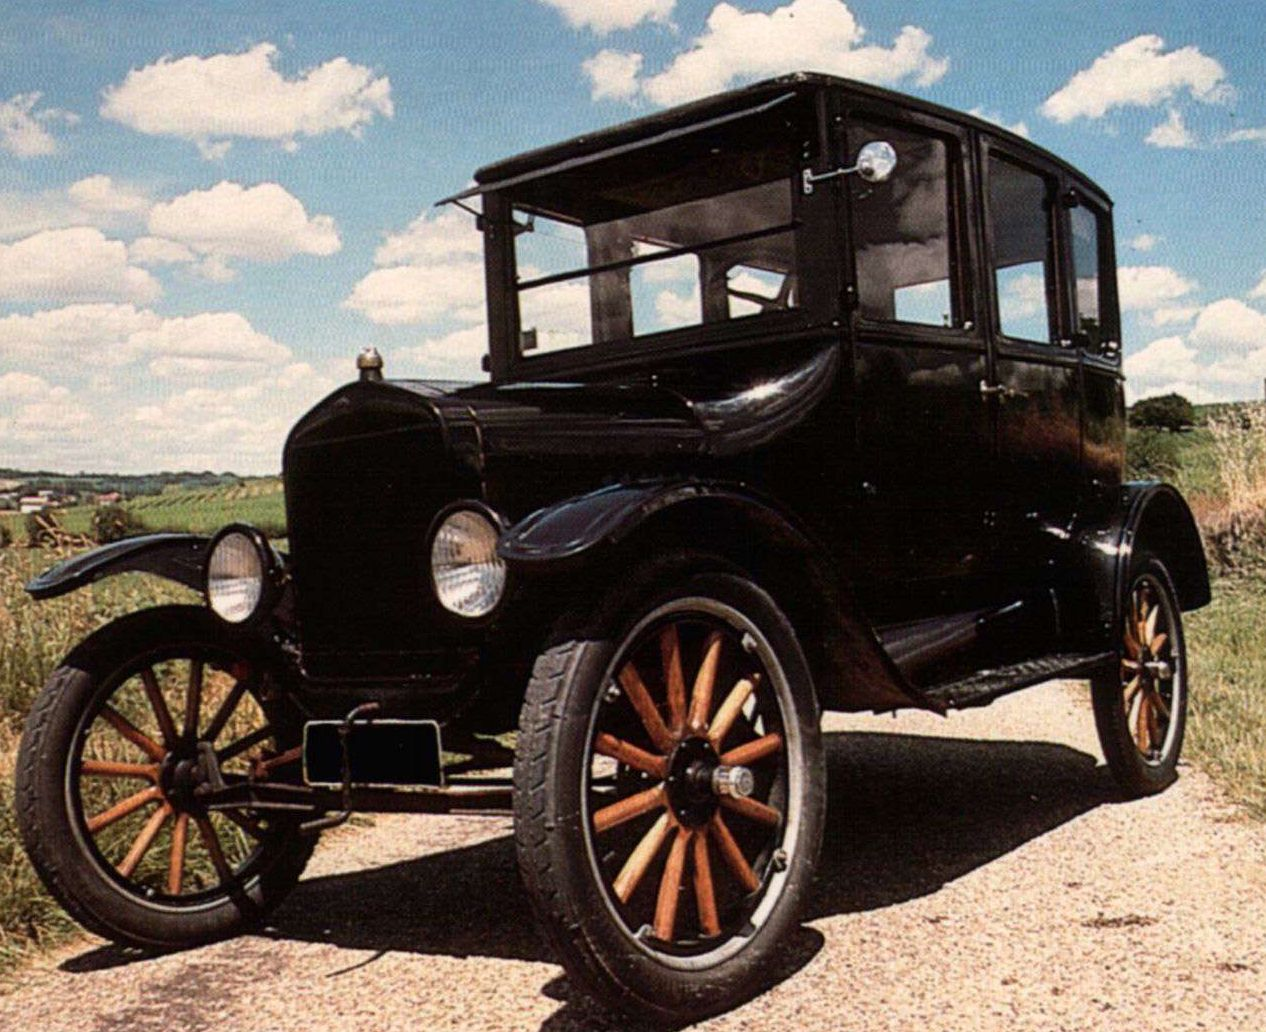 how to tell a model t from a model a